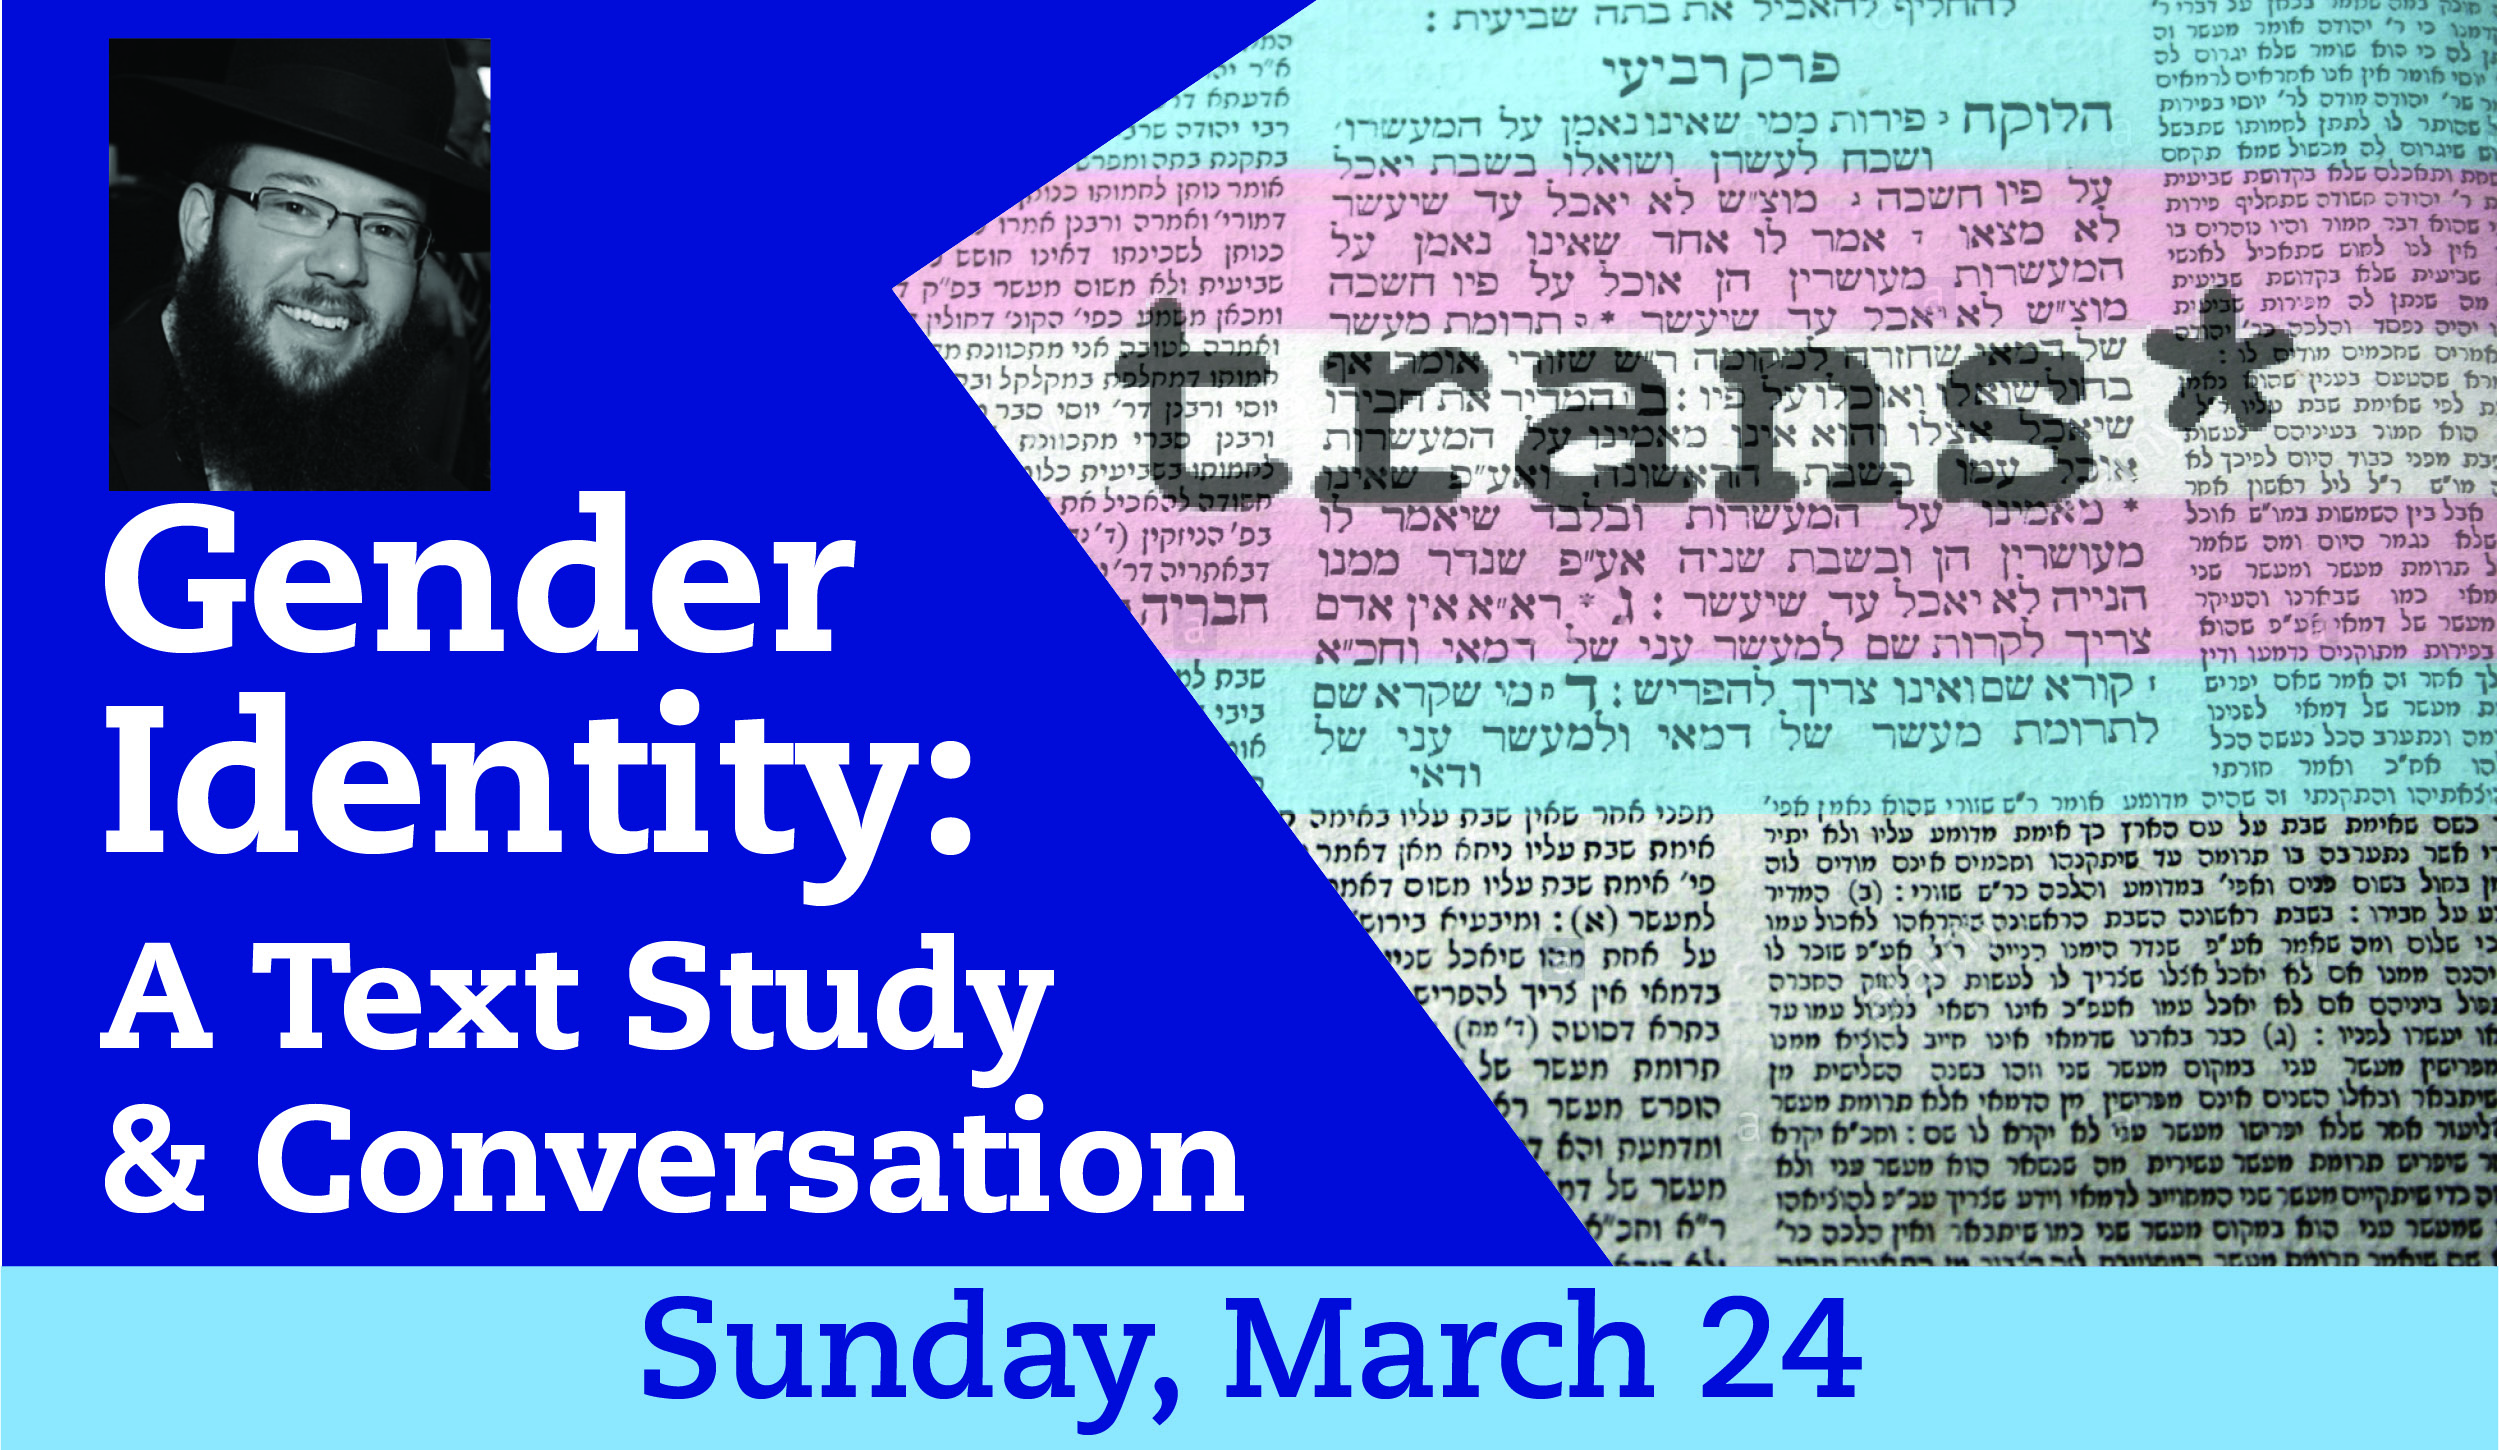 """<a href=""""https://www.cbsteaneck.org/event/advocacy-for-trans-rights-and-inclusivity..html""""                                     target=""""_blank"""">                                                                 <span class=""""slider_title"""">                                     Gender Identity                                </span>                                                                 </a>"""